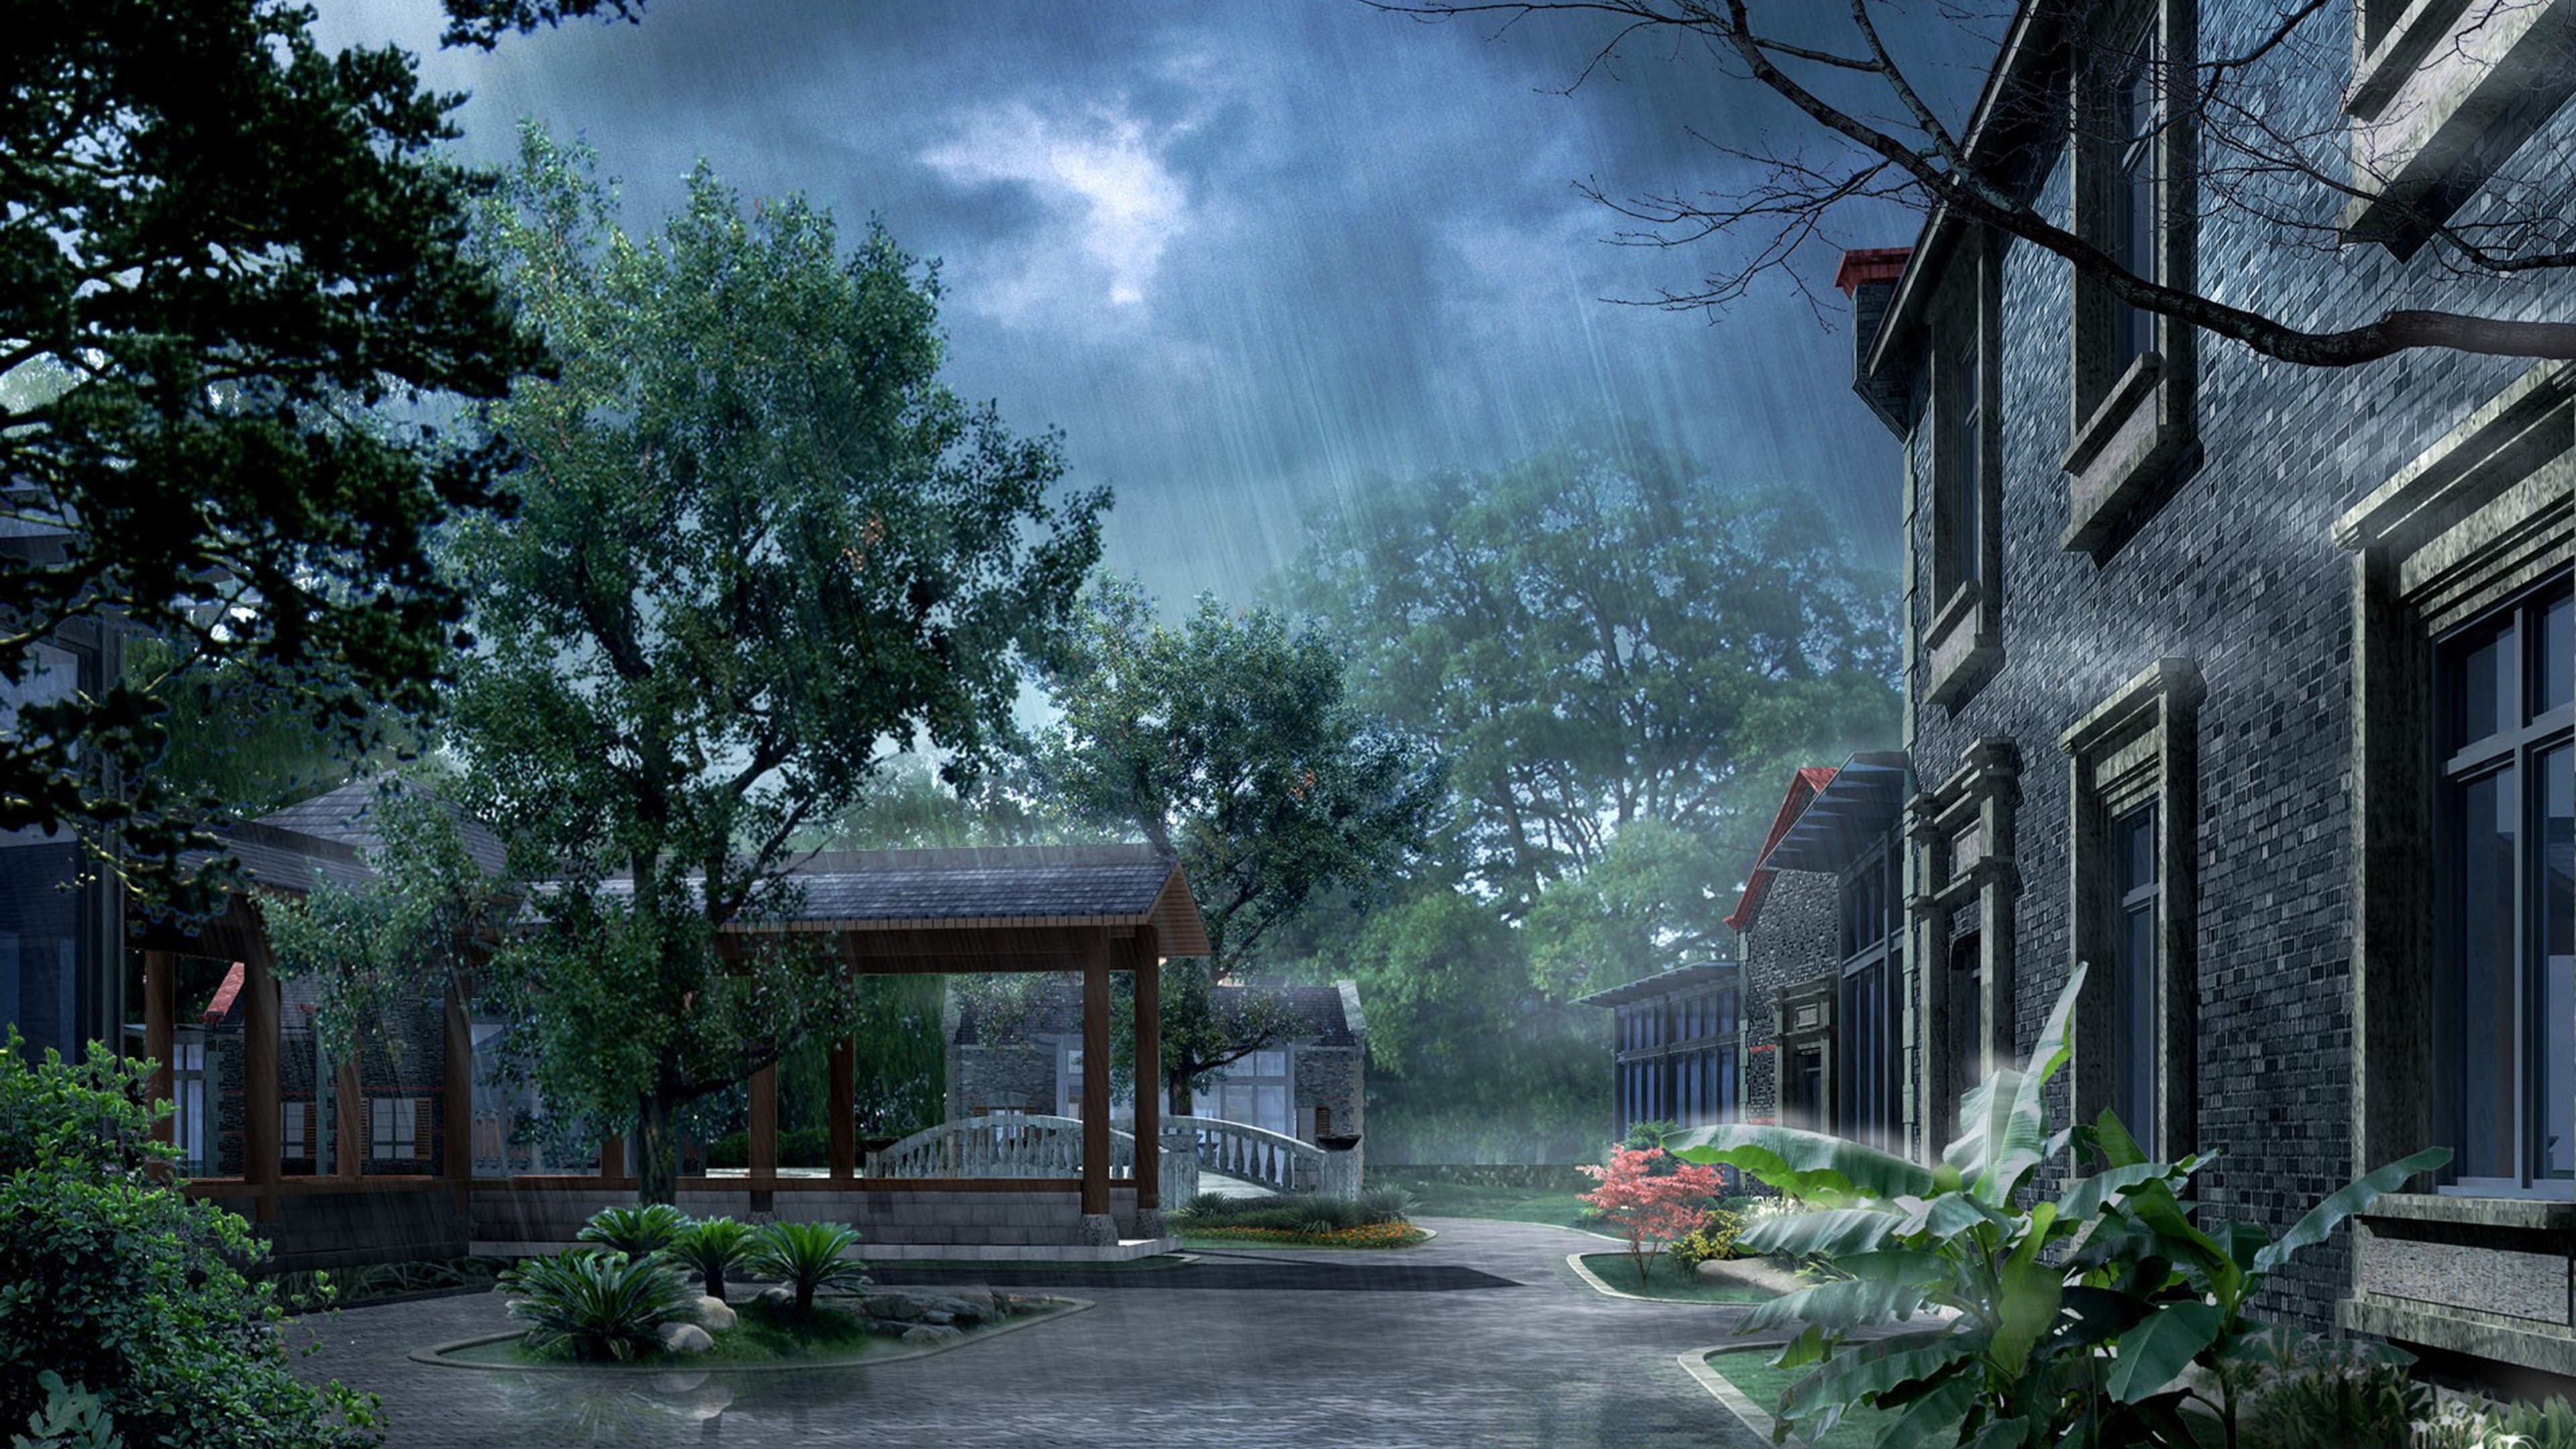 rainy day in japan 3d wallpaper download 3d desktop wallpapers | a